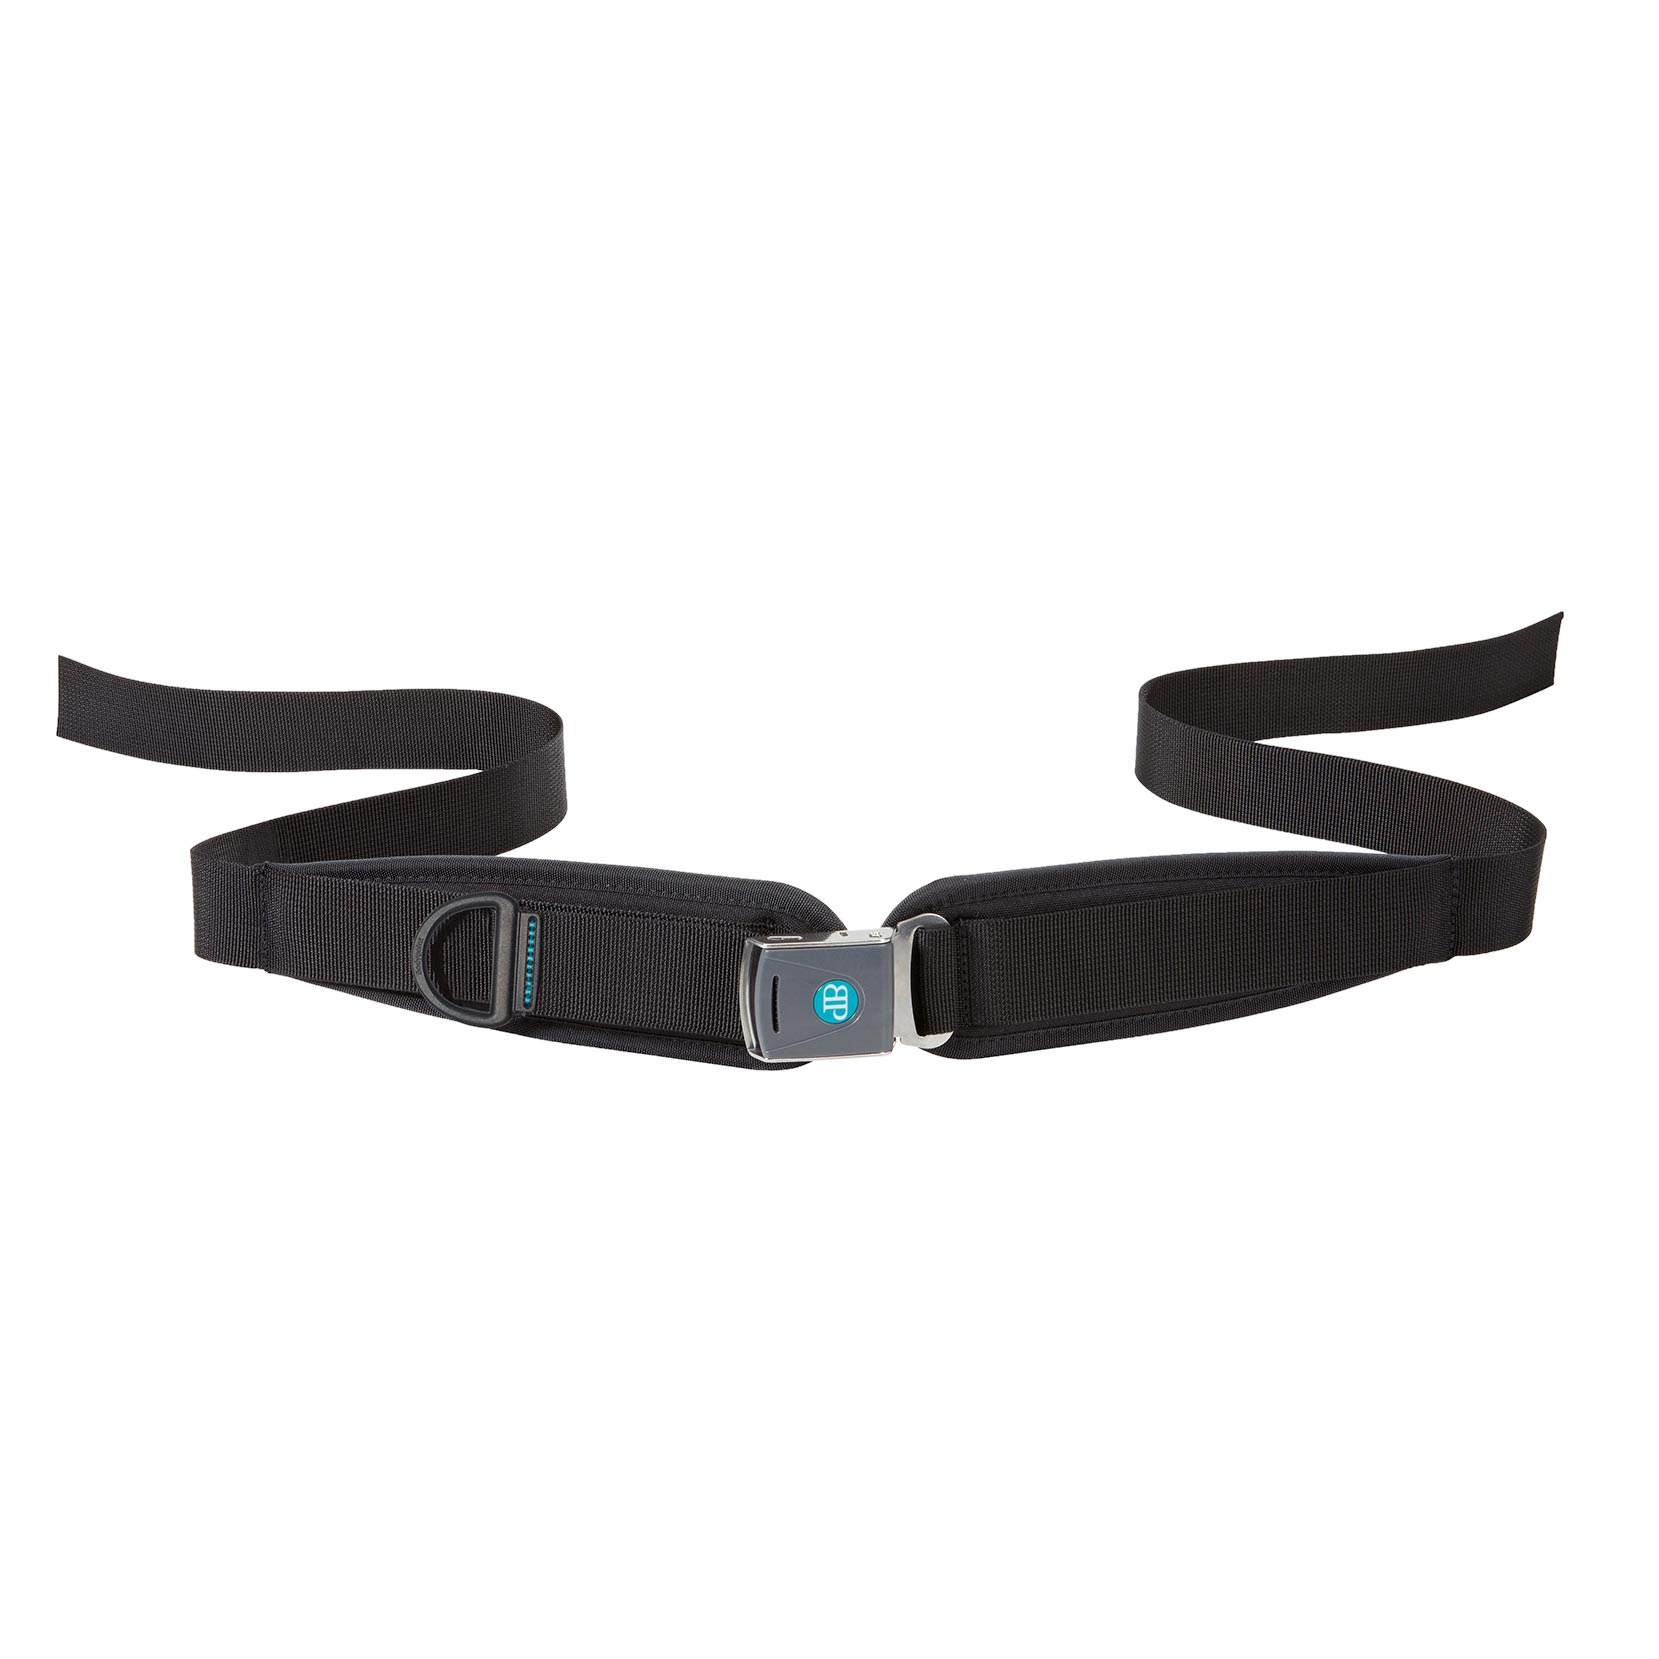 Bodypoint center pull two point padded hip belt with Rehab Latch Buckle